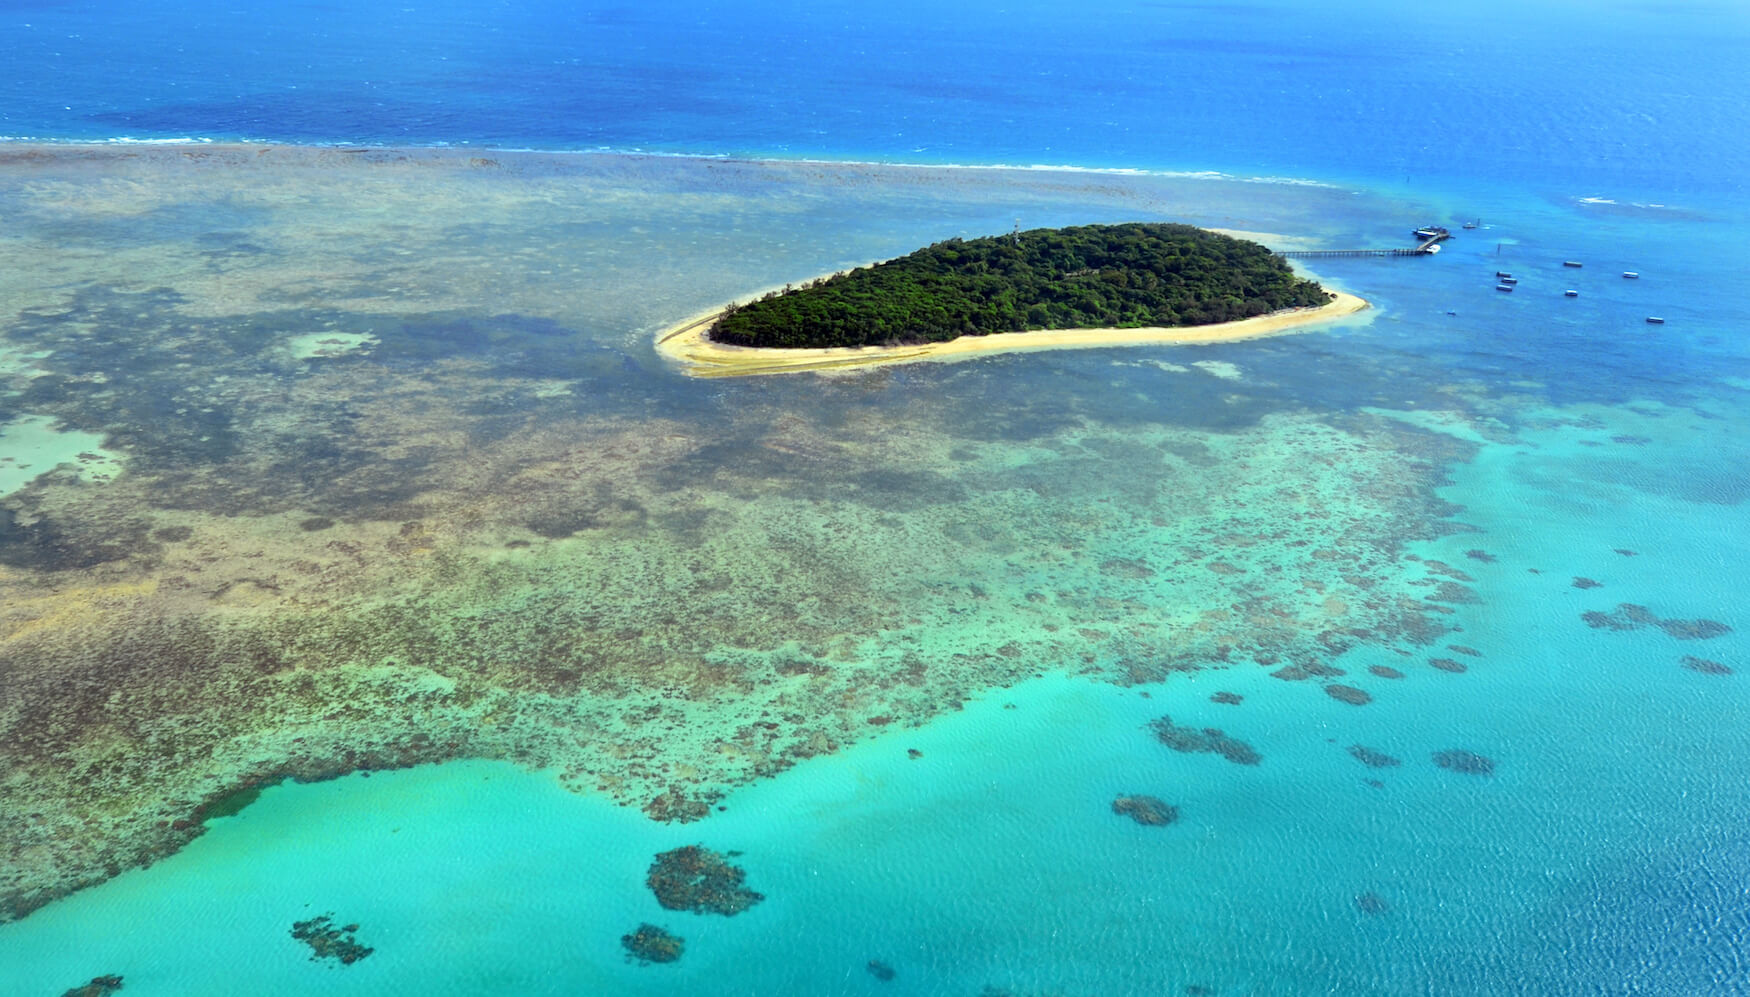 Aerial view of Green Island reef at the Great Barrier Reef near Cairns in Tropical North Queensland, Queensland, Australia.